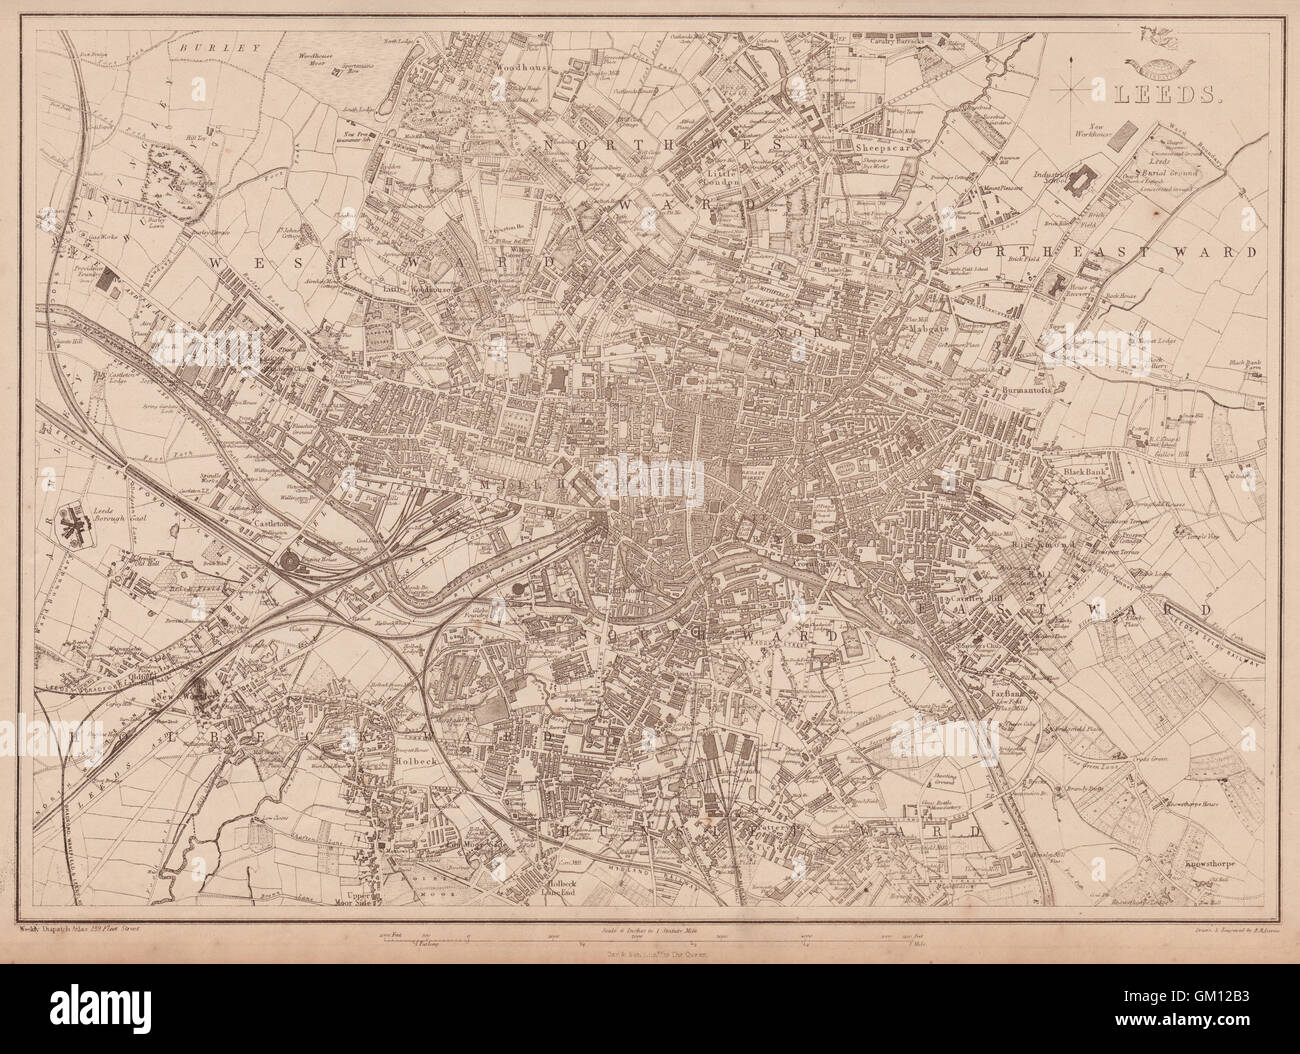 LEEDS Large towncity plan by BR DAVIES for the Dispatch Atlas